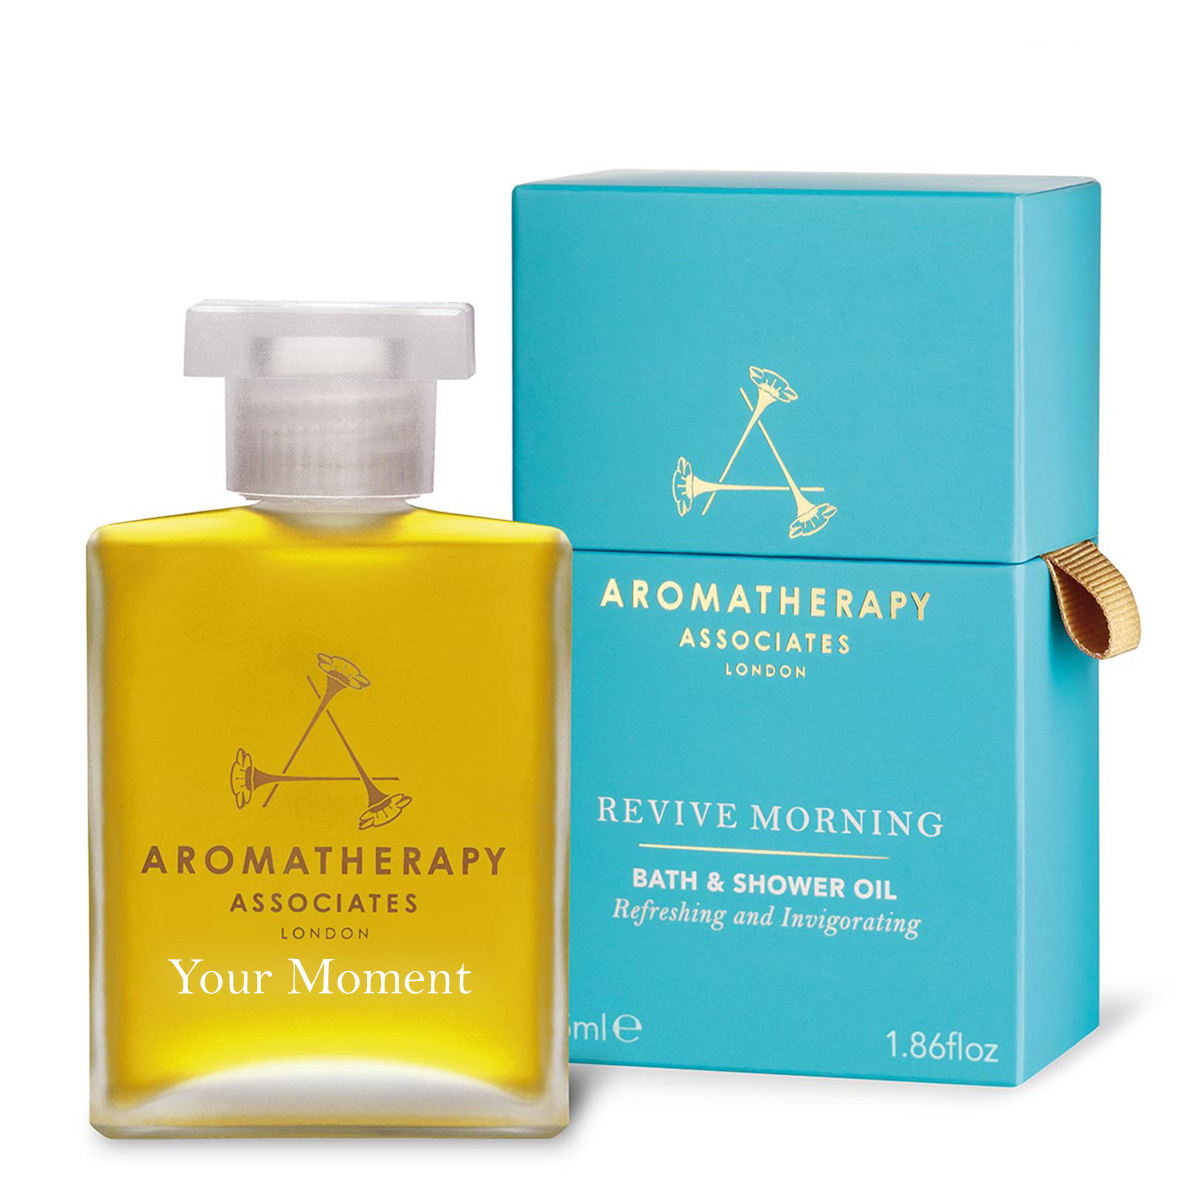 Revive Morning Bath and Shower Oil